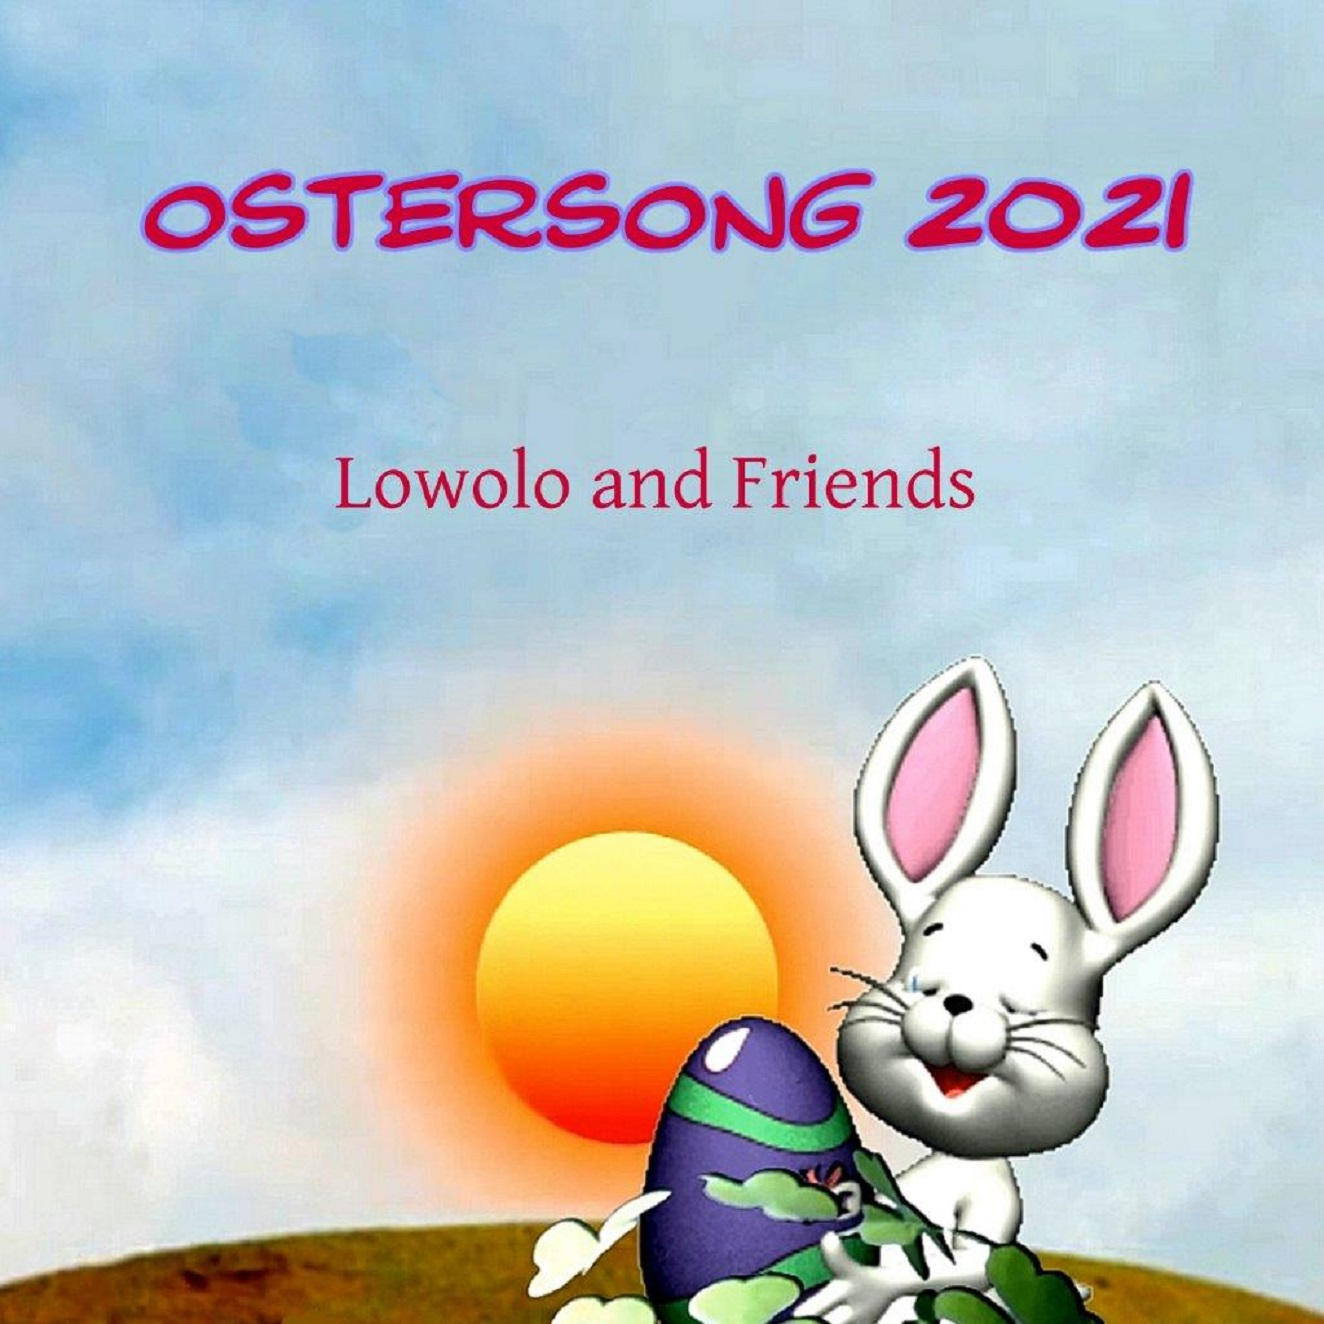 Lowolo and friends - Ostersong 2021 - Cover.jpg